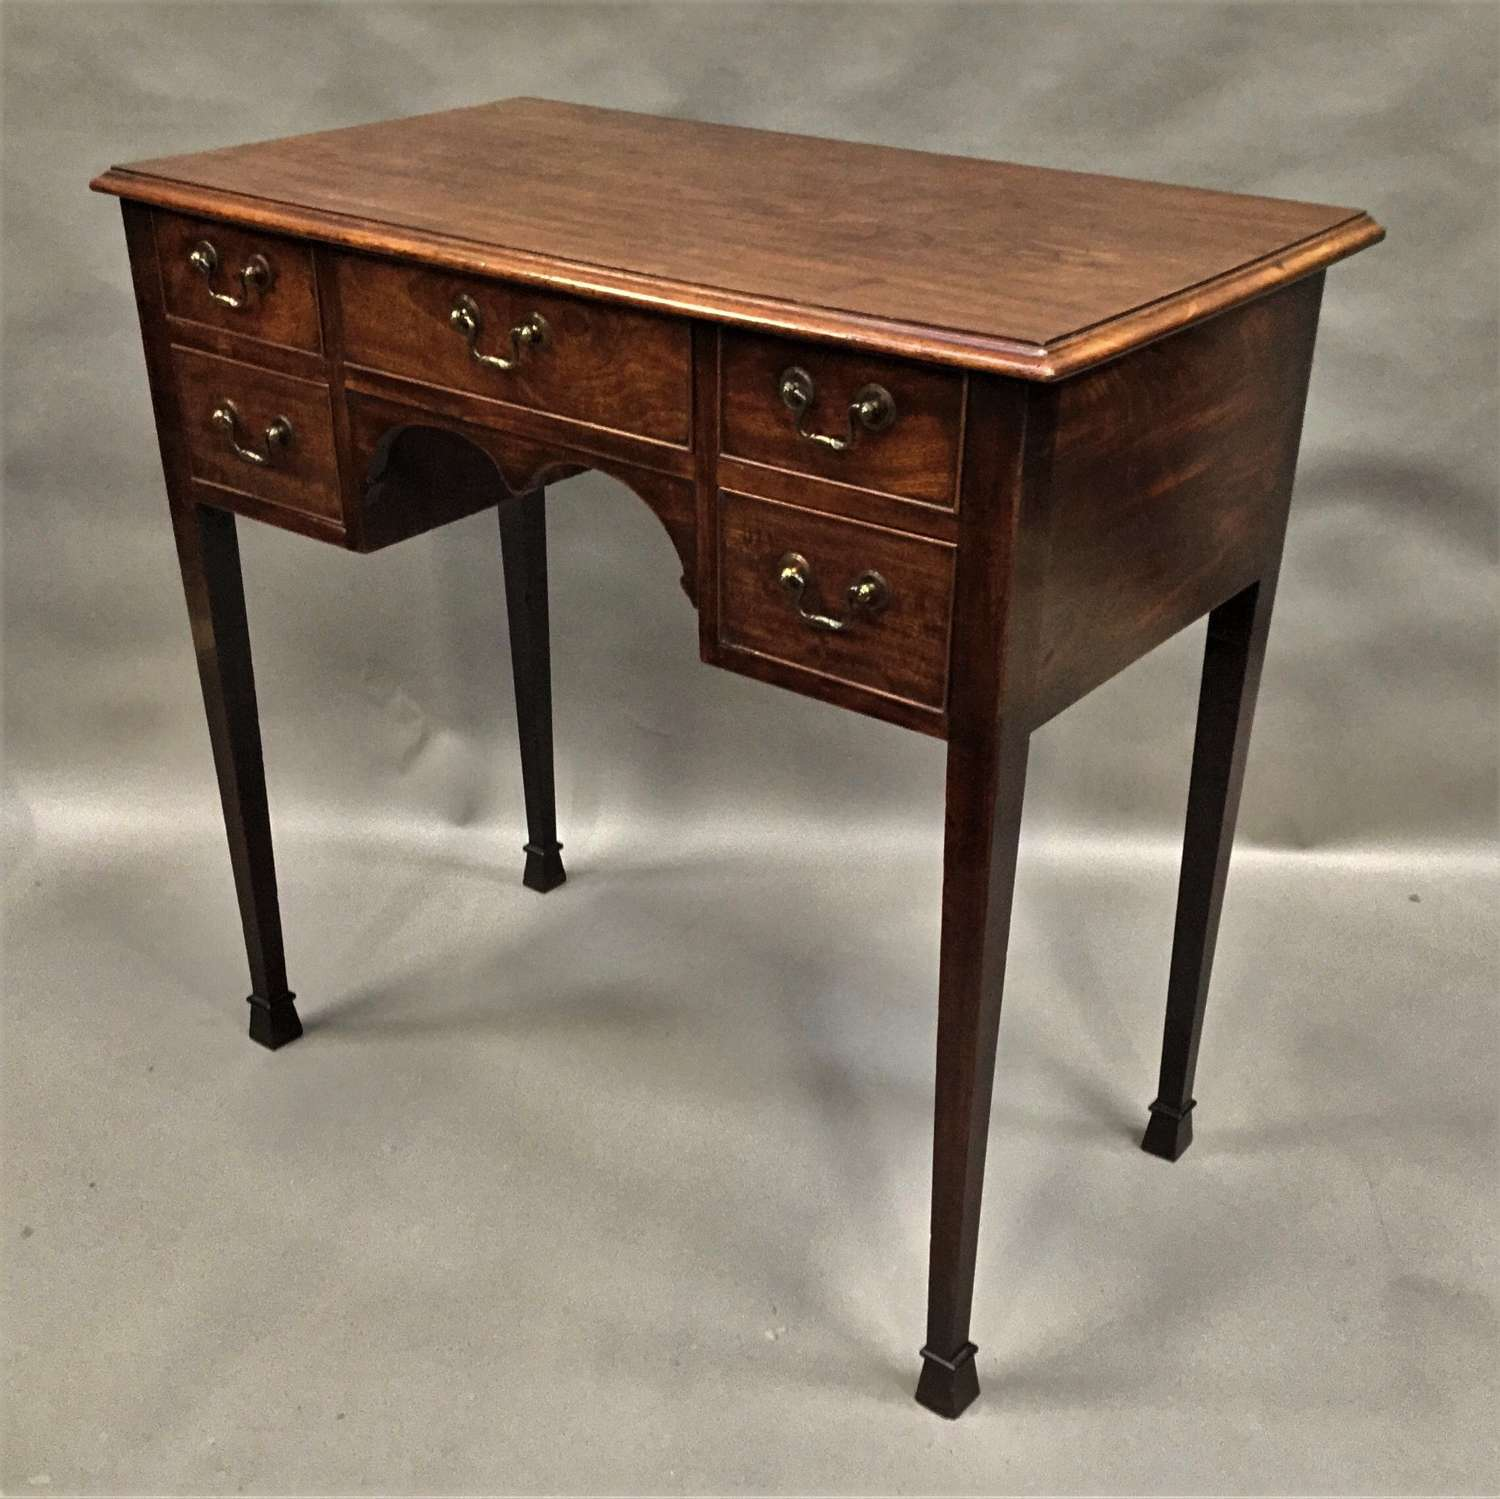 George III mahogany side table / dressing table